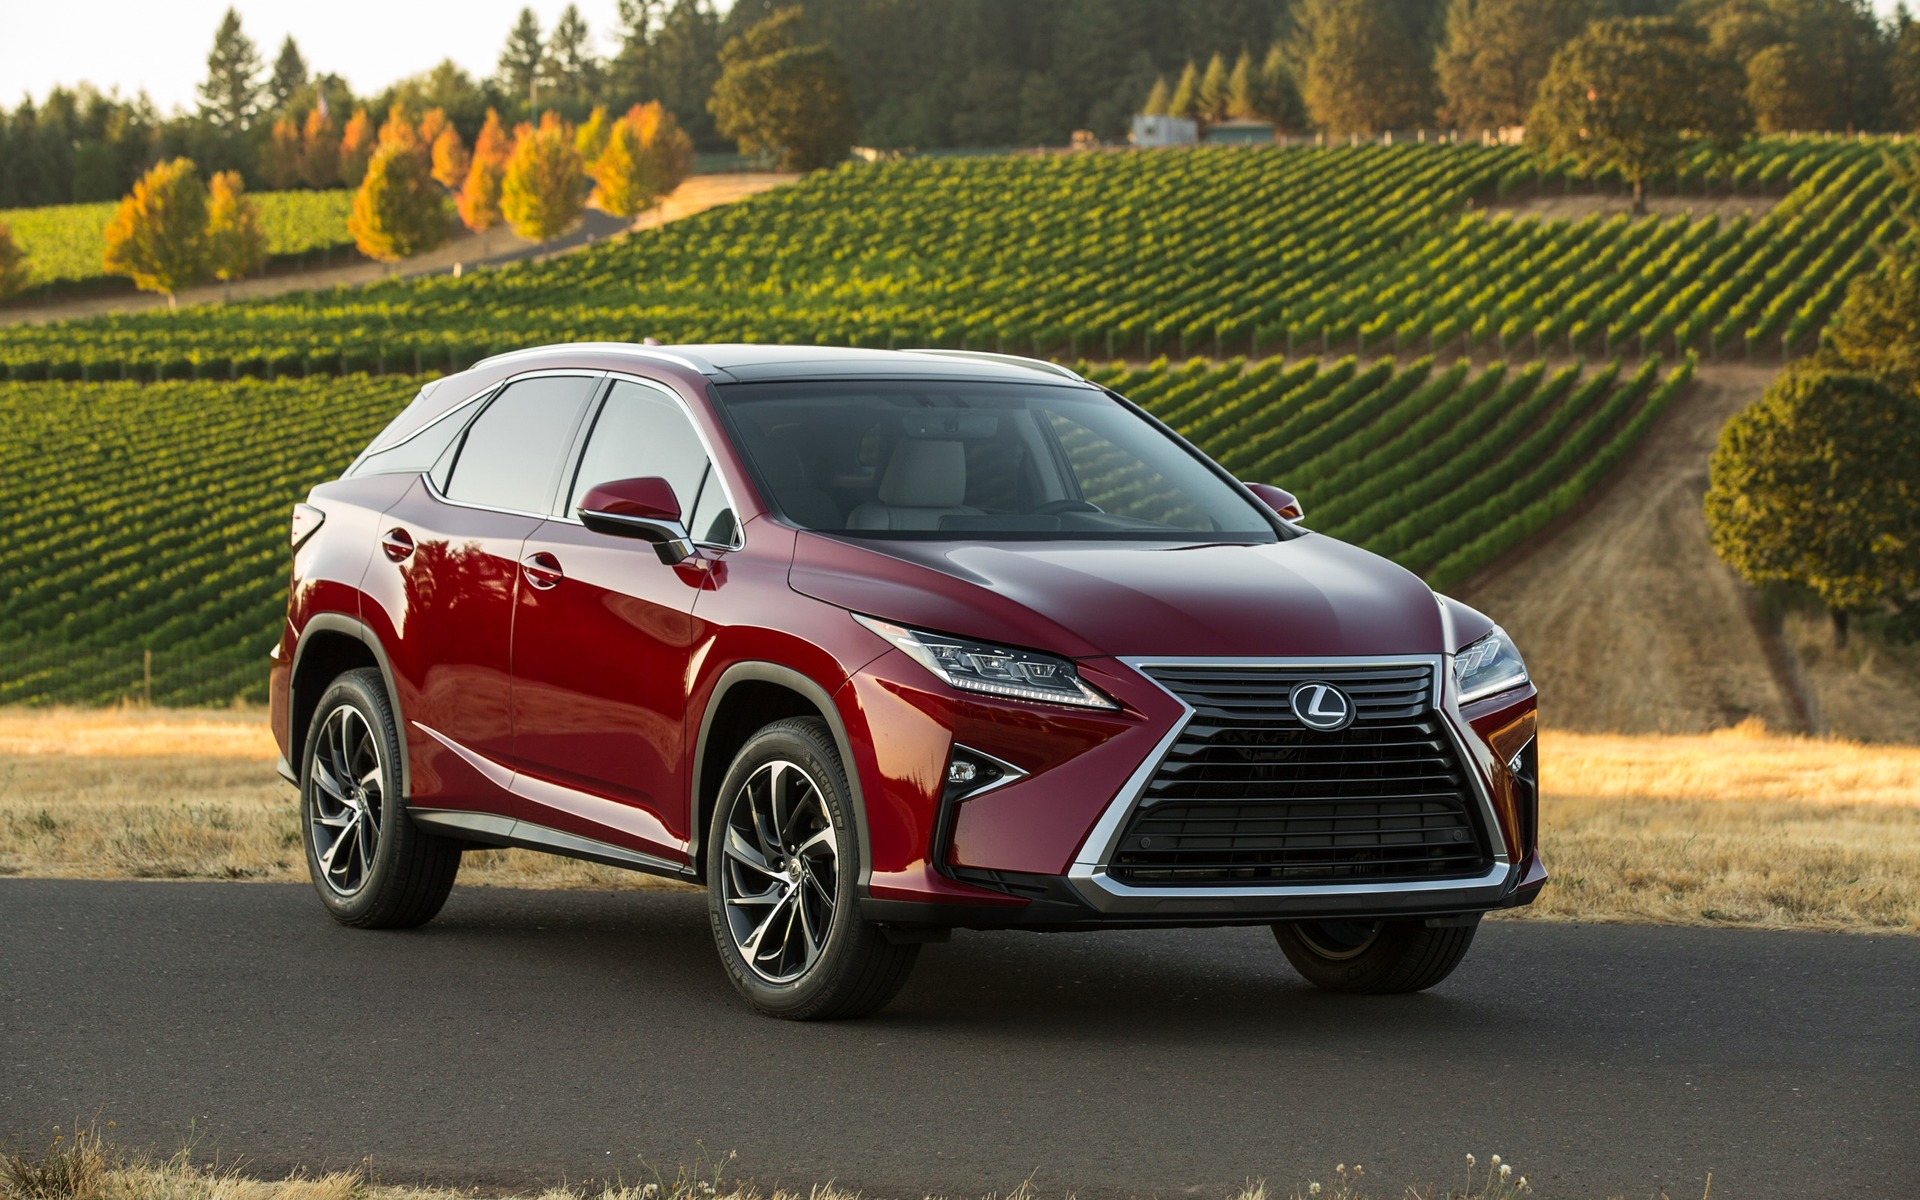 2018 lexus rx. Wonderful 2018 With 2018 Lexus Rx E